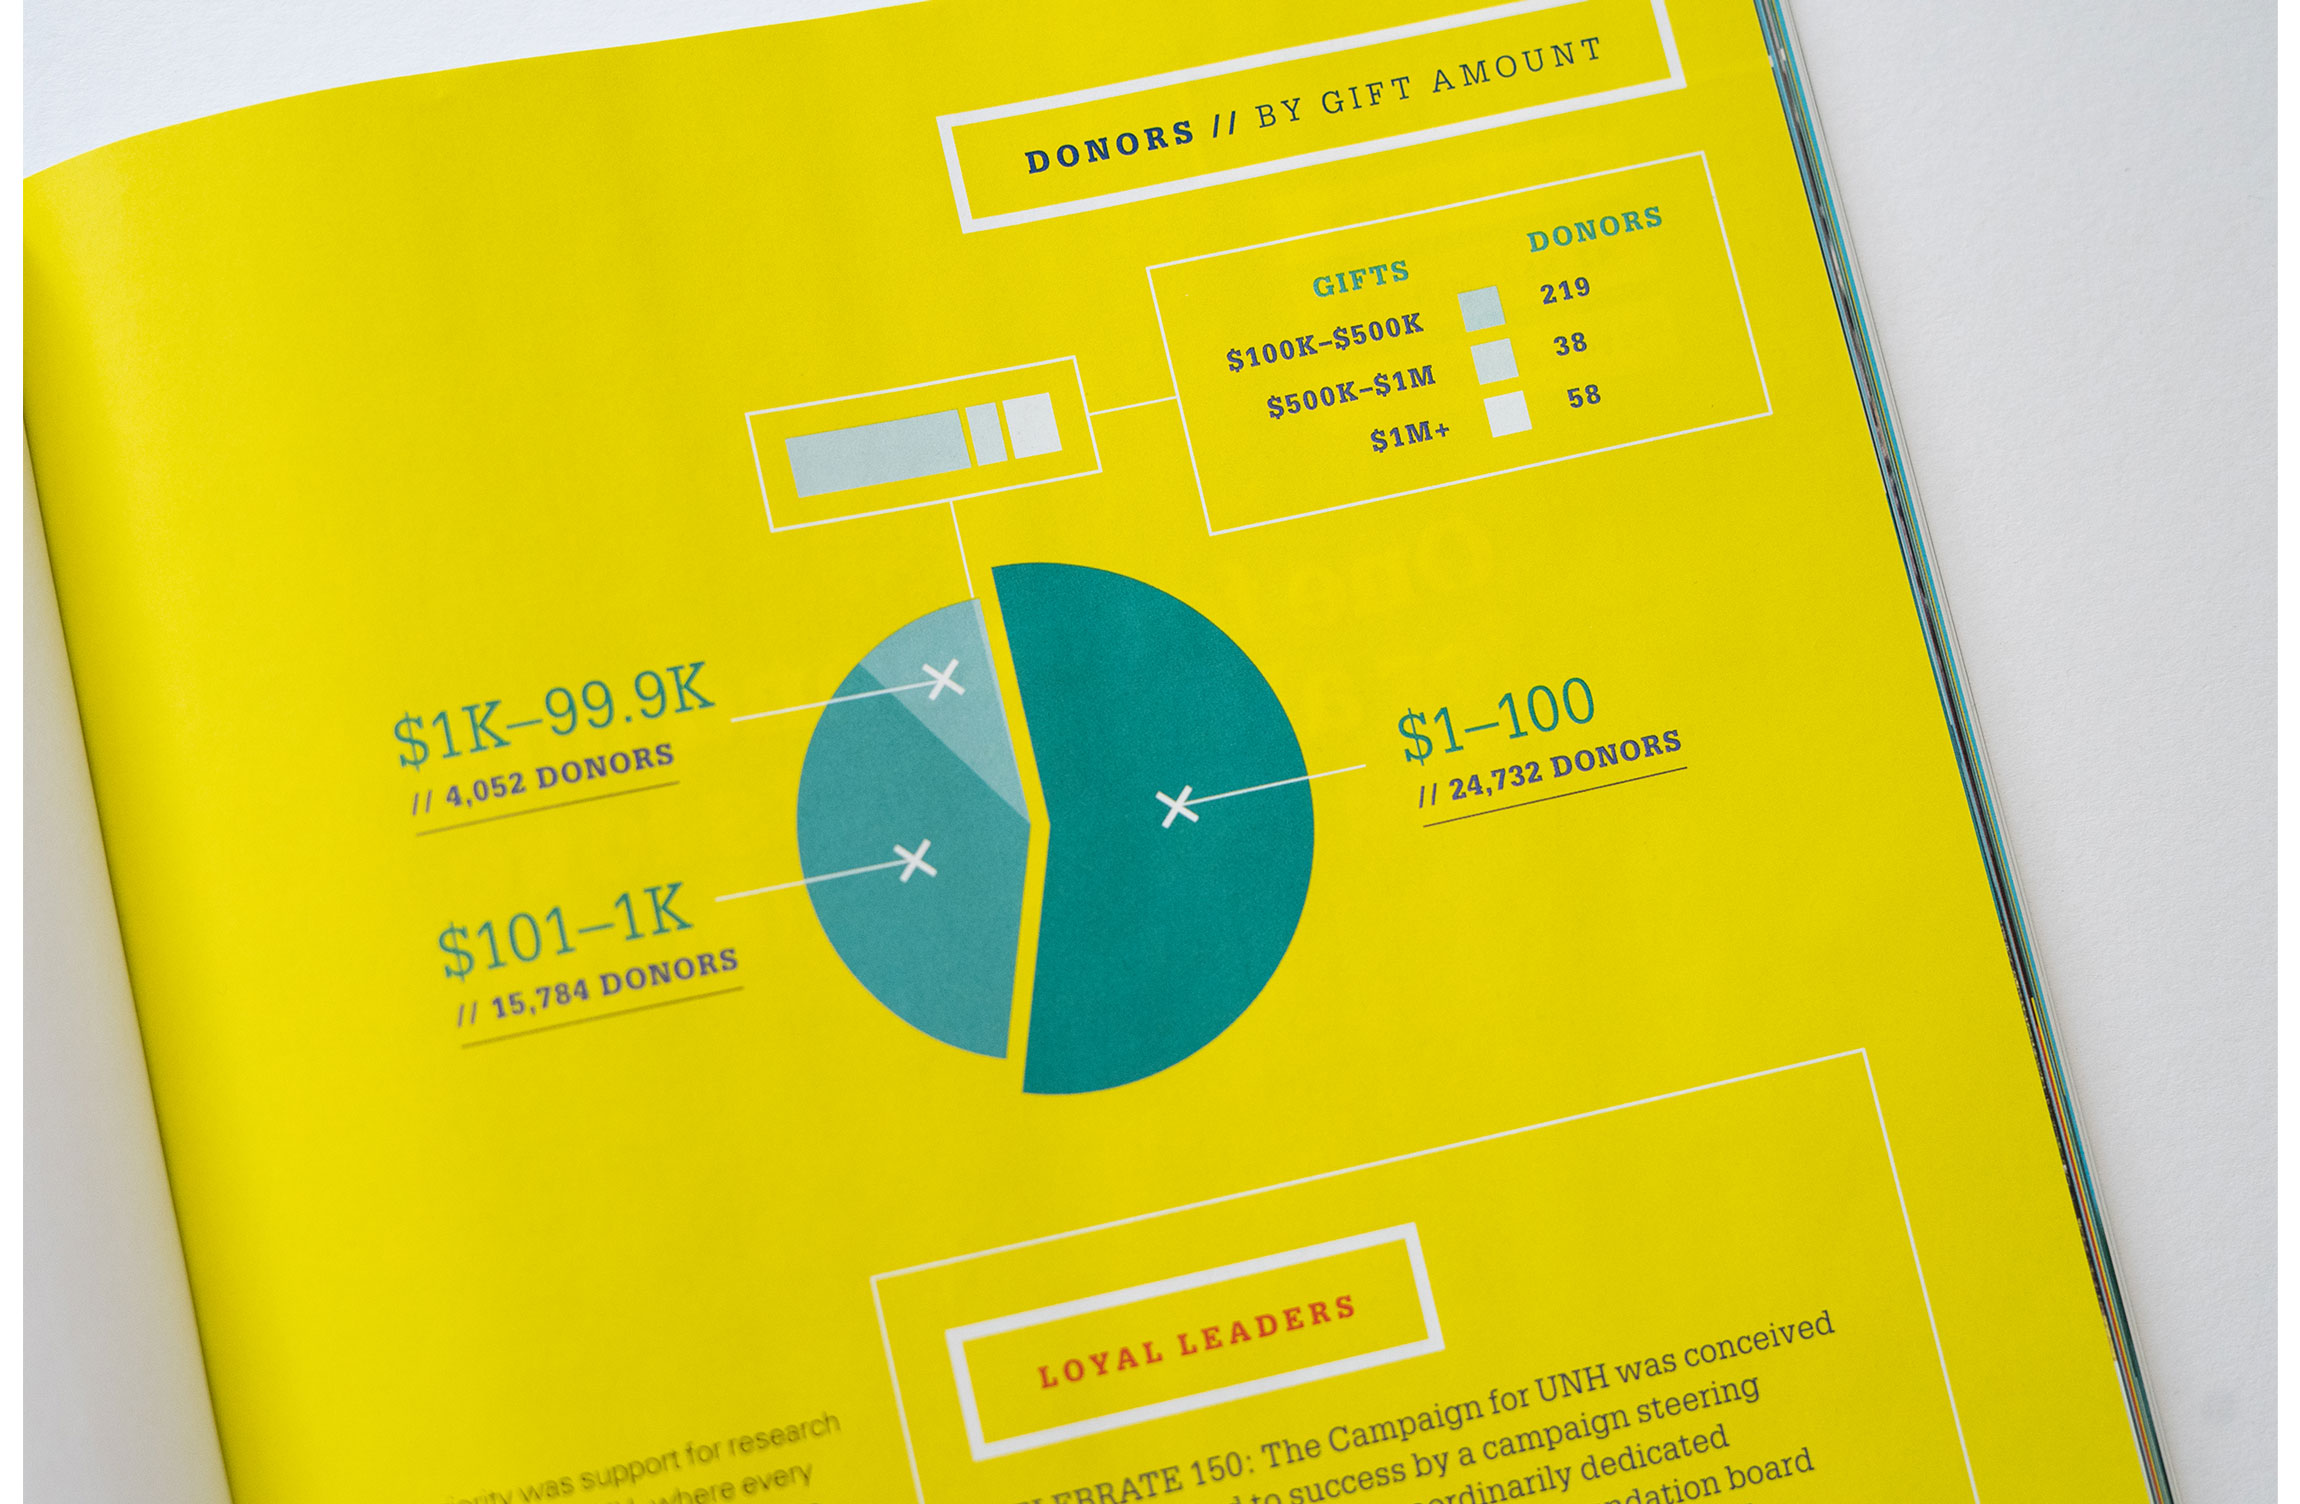 UNH Celebrate 150 Campaign Results Feature Design - Dollars and Donors Infographic - Loren Marple